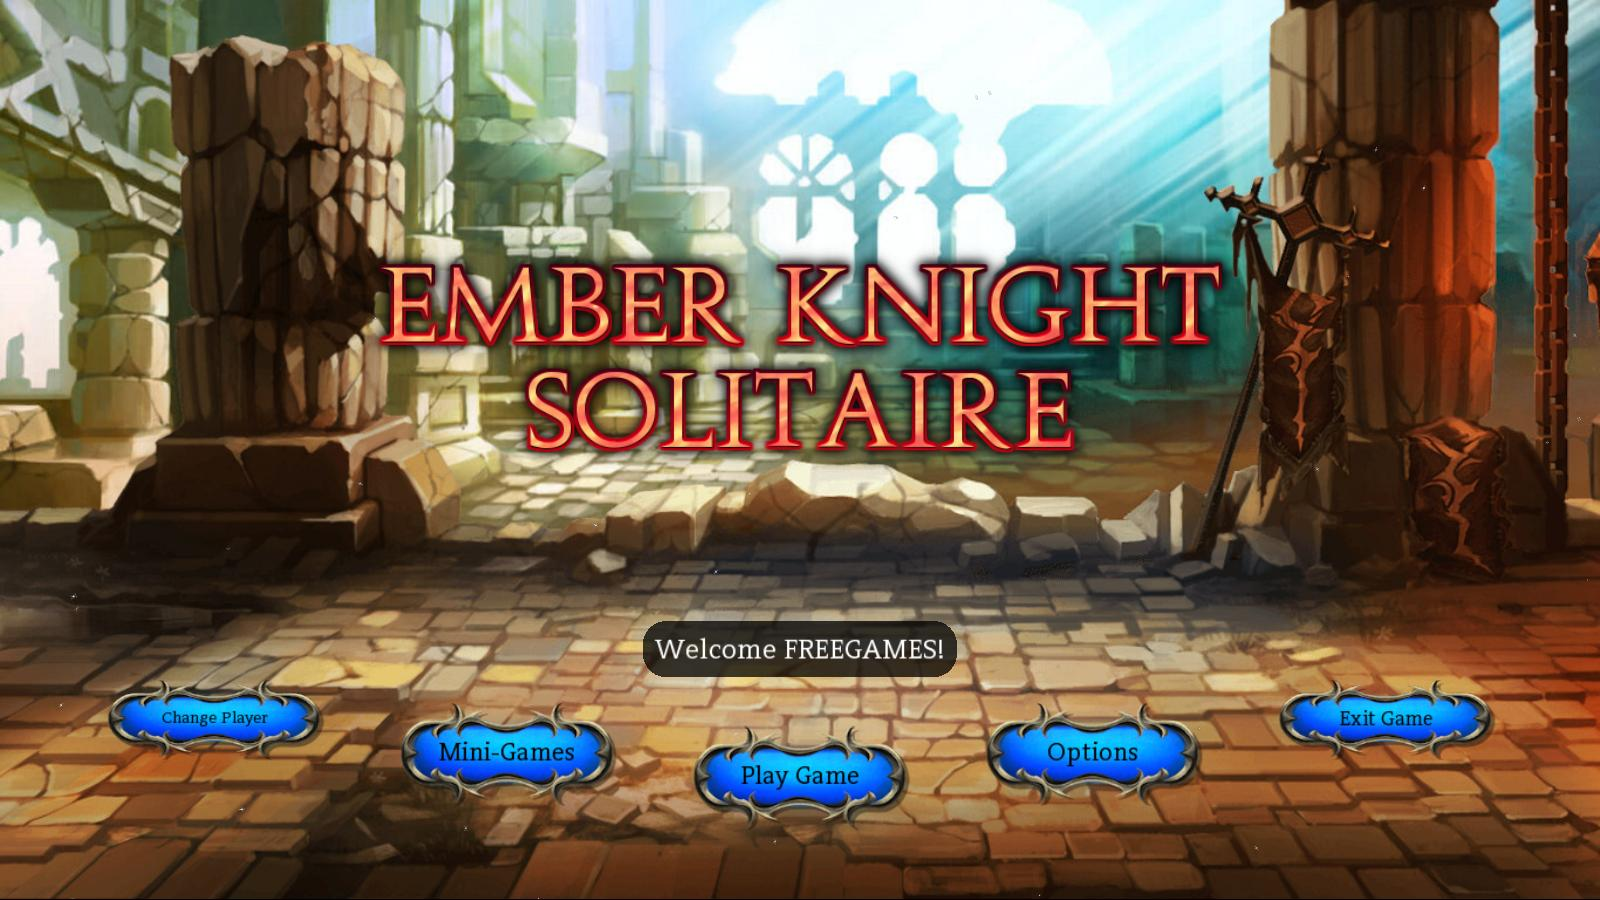 Ember Knight Solitaire (En)